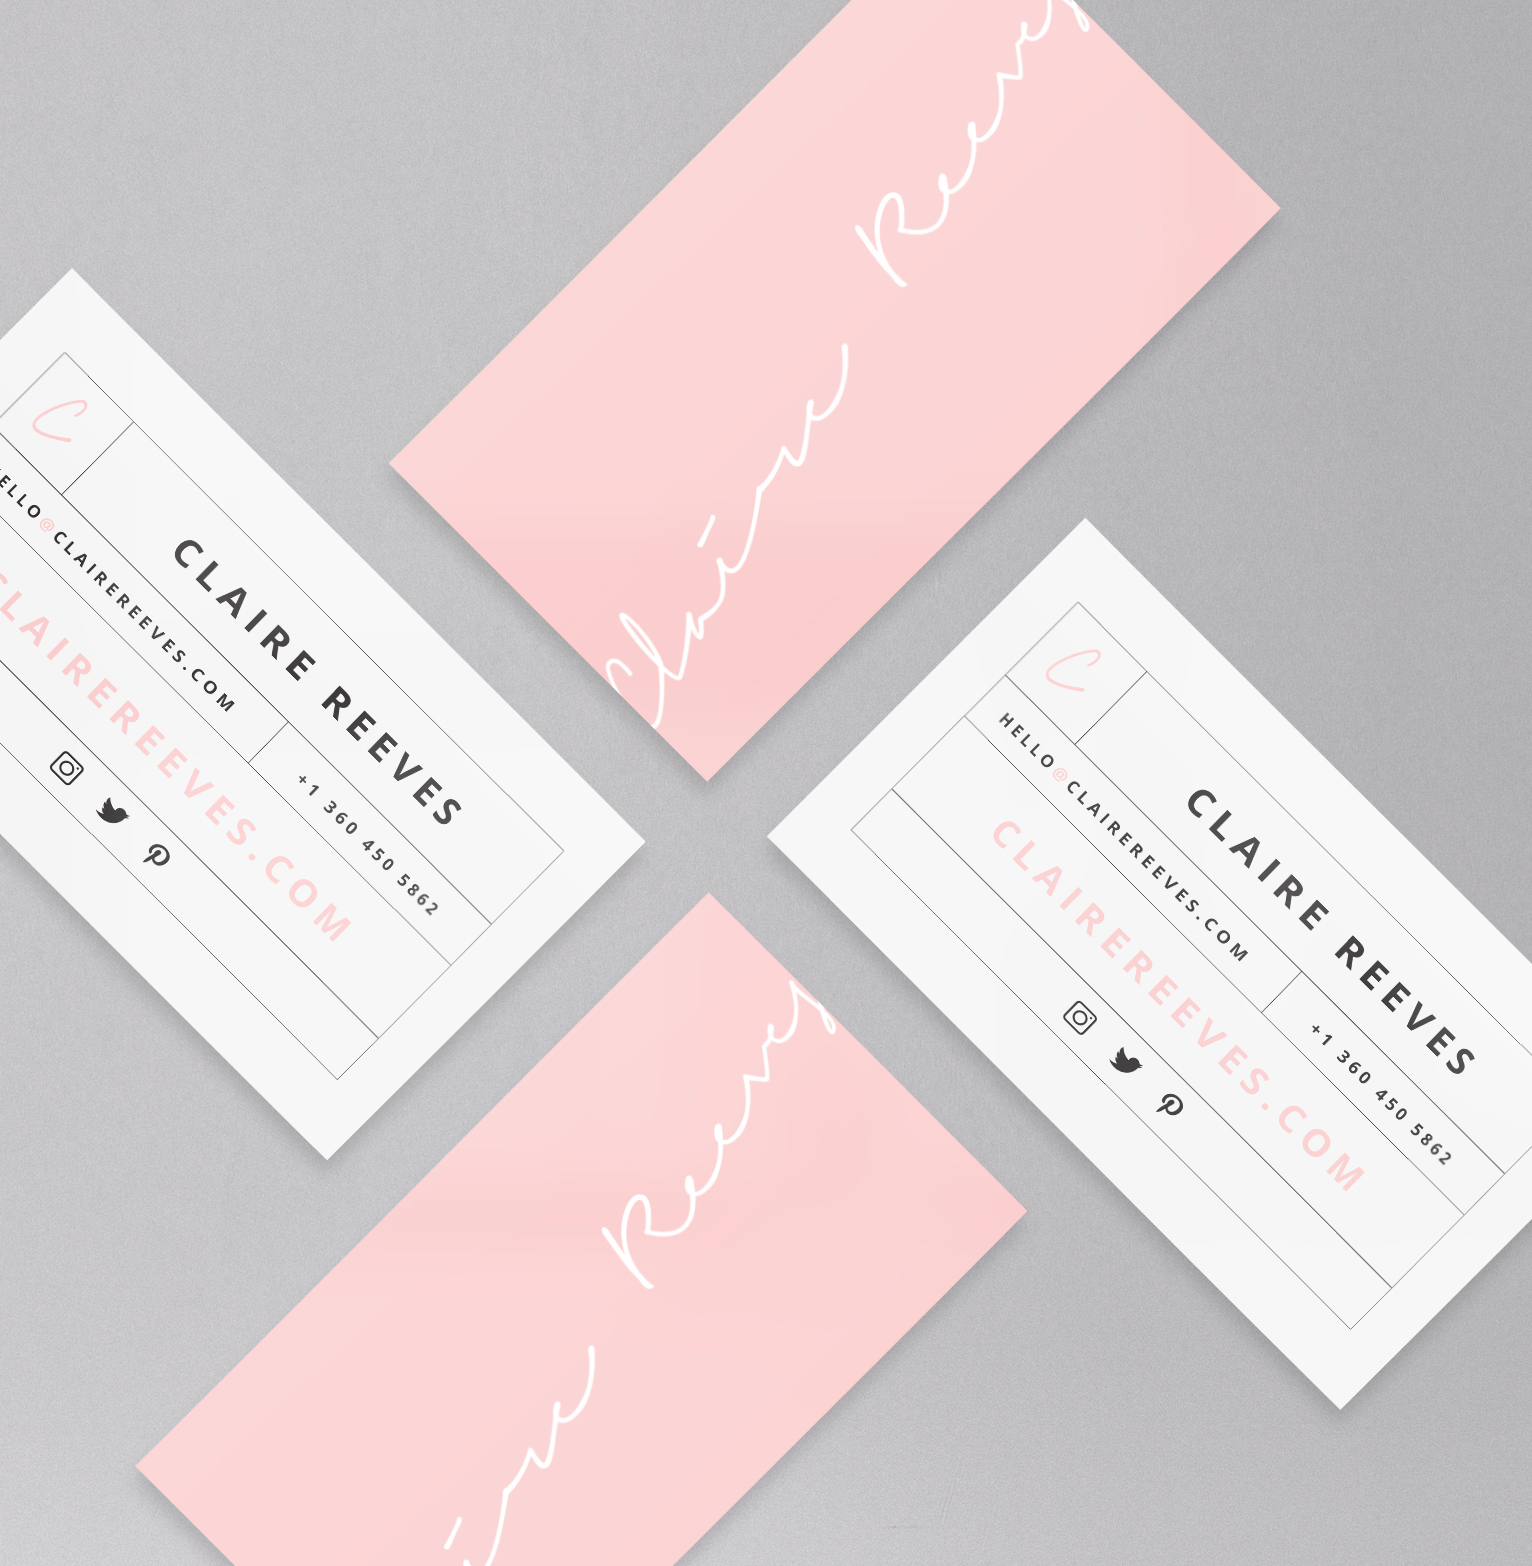 Claire-Reeves-Blogger-Business-Cards-2.jpg